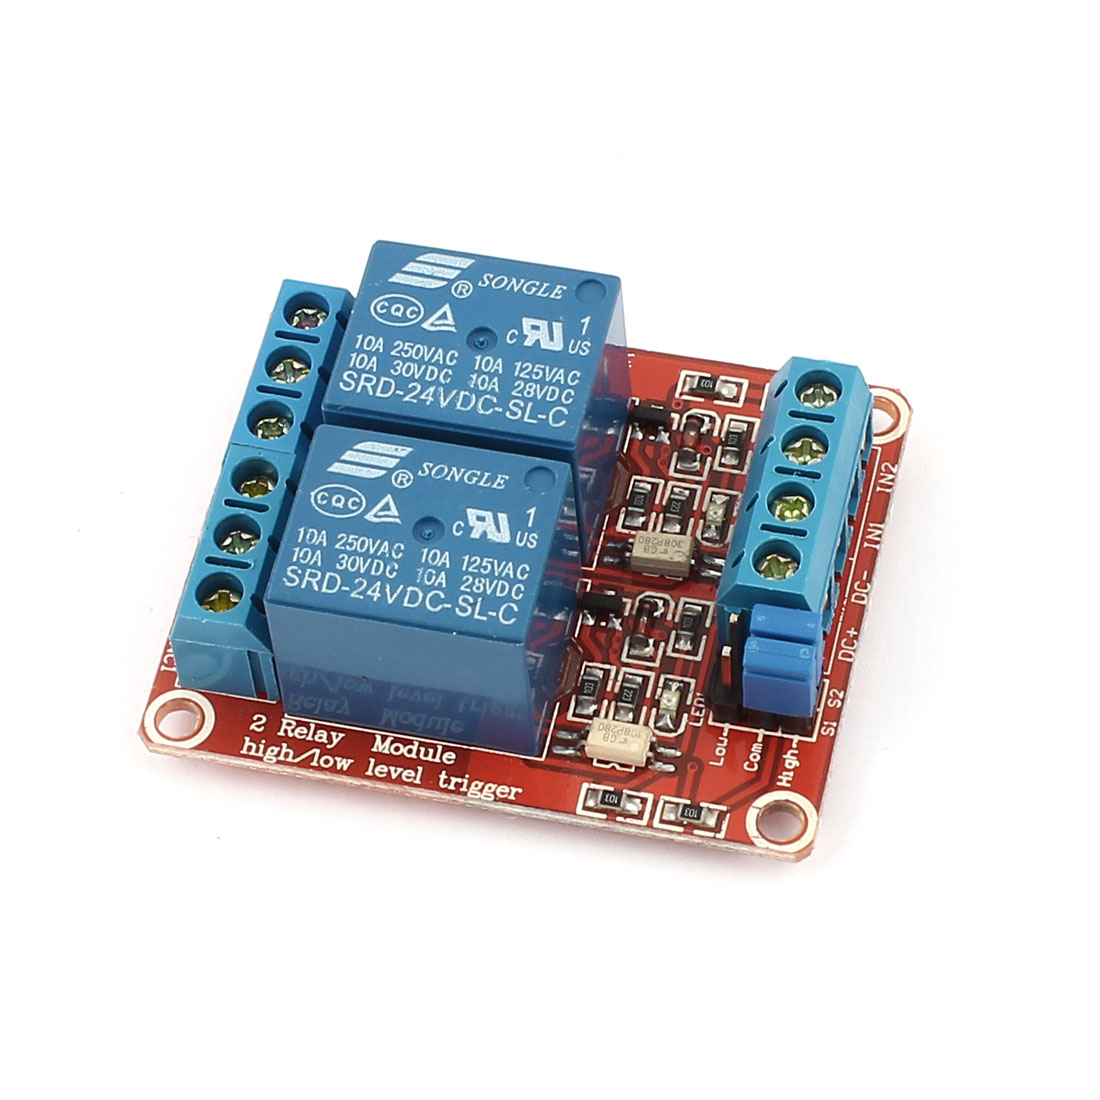 DC24V Dual Channel High Low Level Trigger Relay Expansion Circuit Board Module Blue